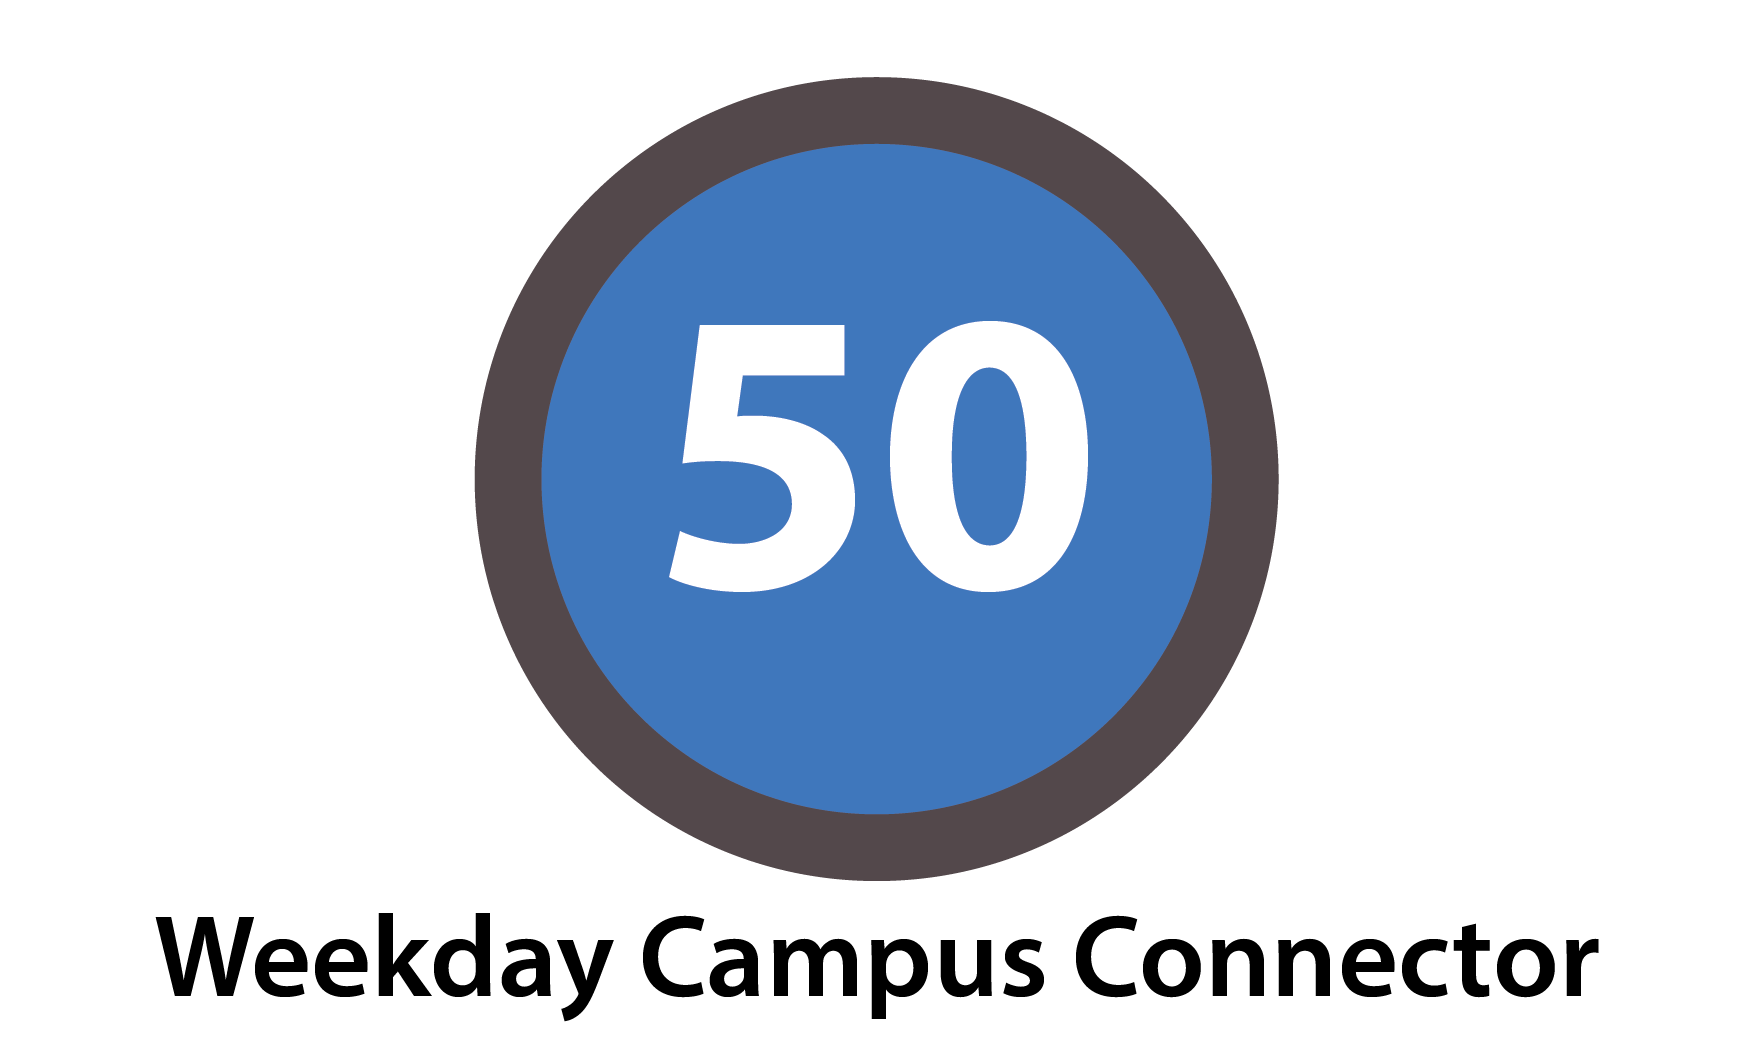 Route 50 button